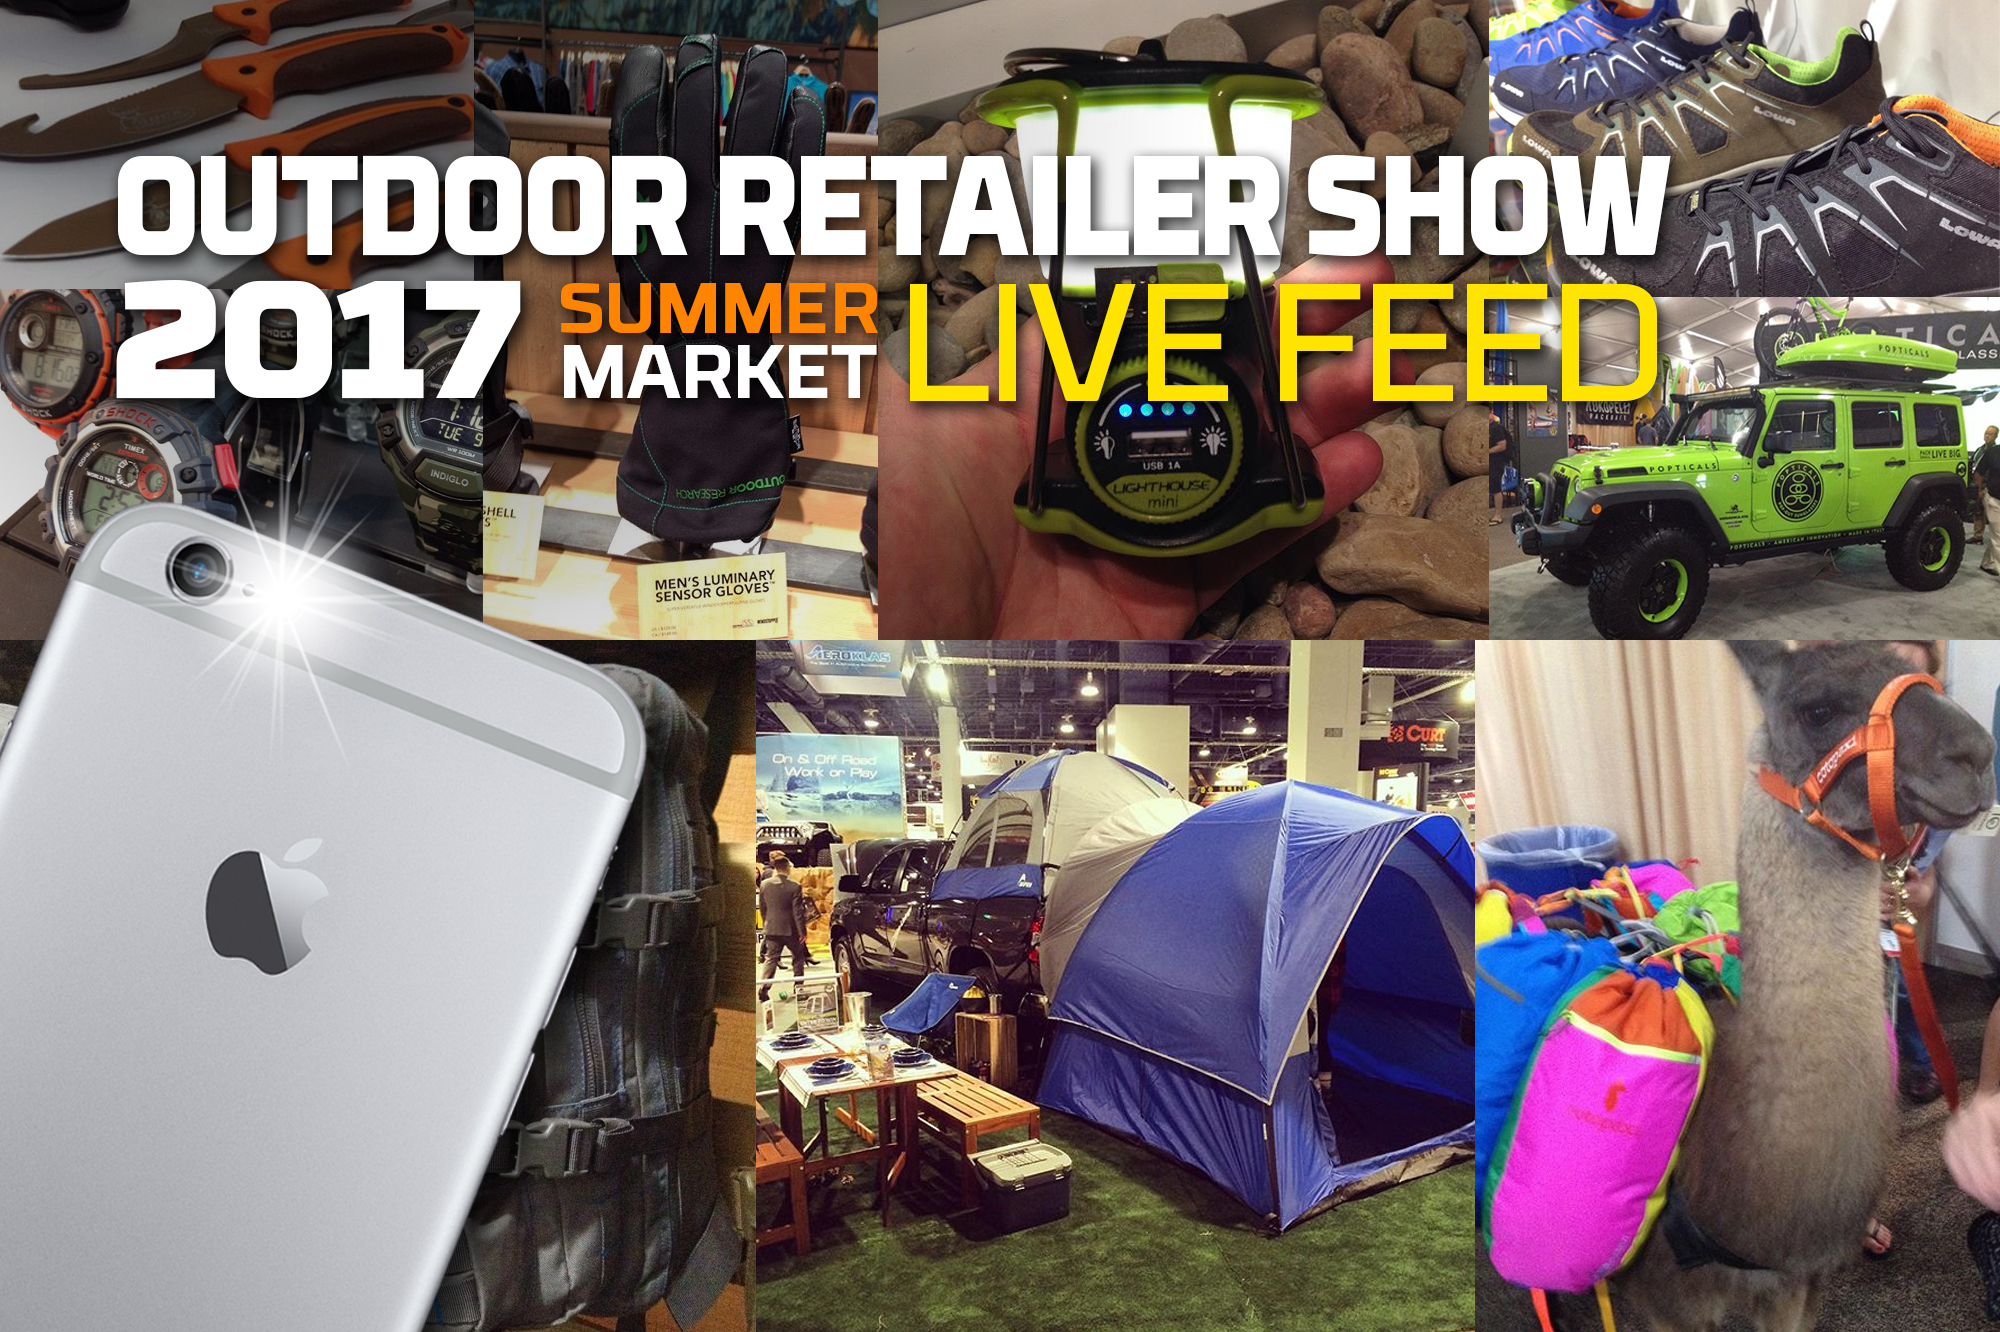 Outdoor Retailer Summer Market 2017 lead image